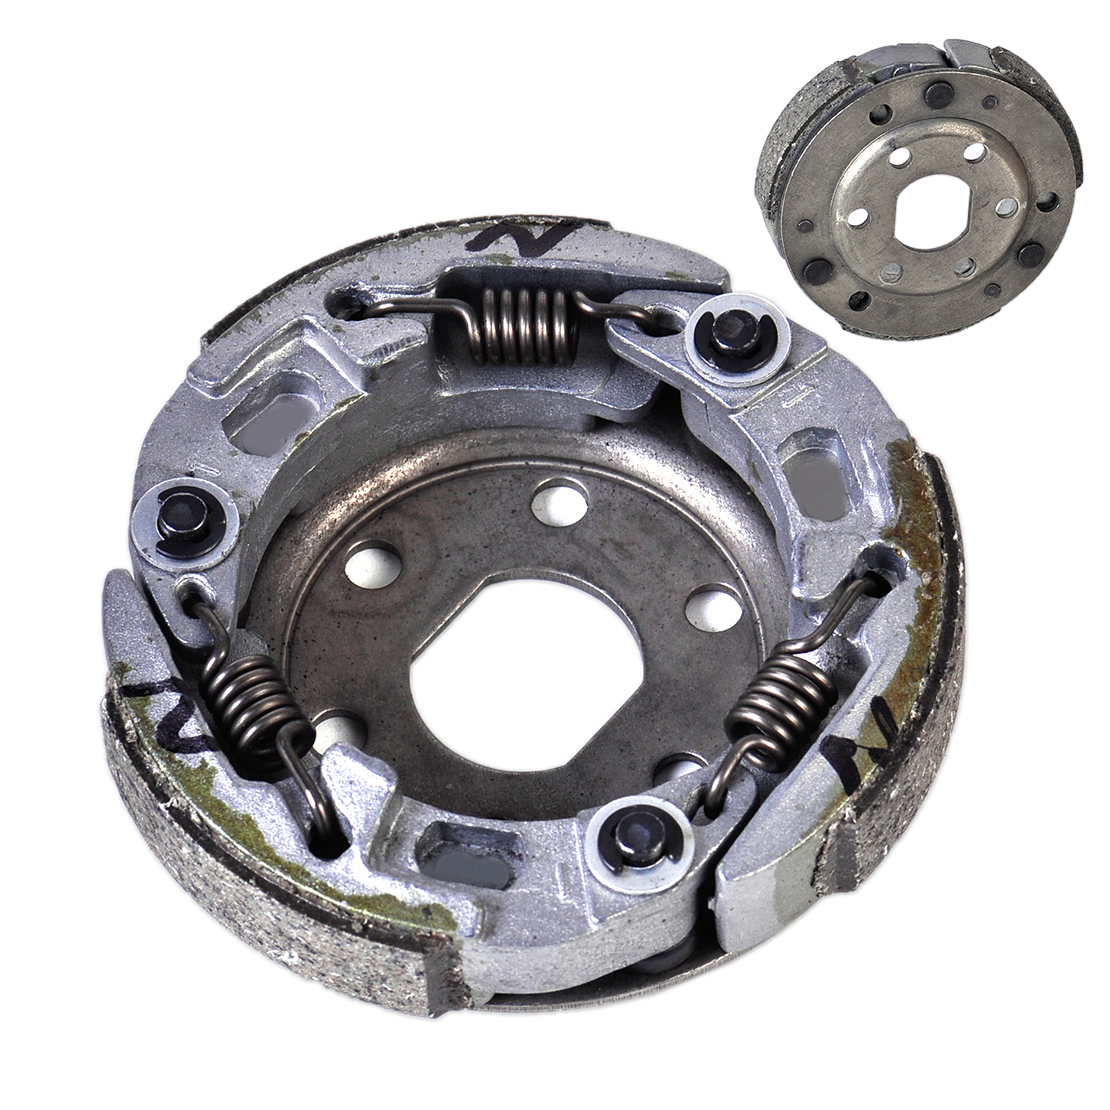 US $20 23 12% OFF|DWCX Performance Racing Clutch Replacement for GY6 50cc  139QMB Scooter Honda Yamaha Loncin ATV Quad Moped Suzuki Shineray-in  Engines